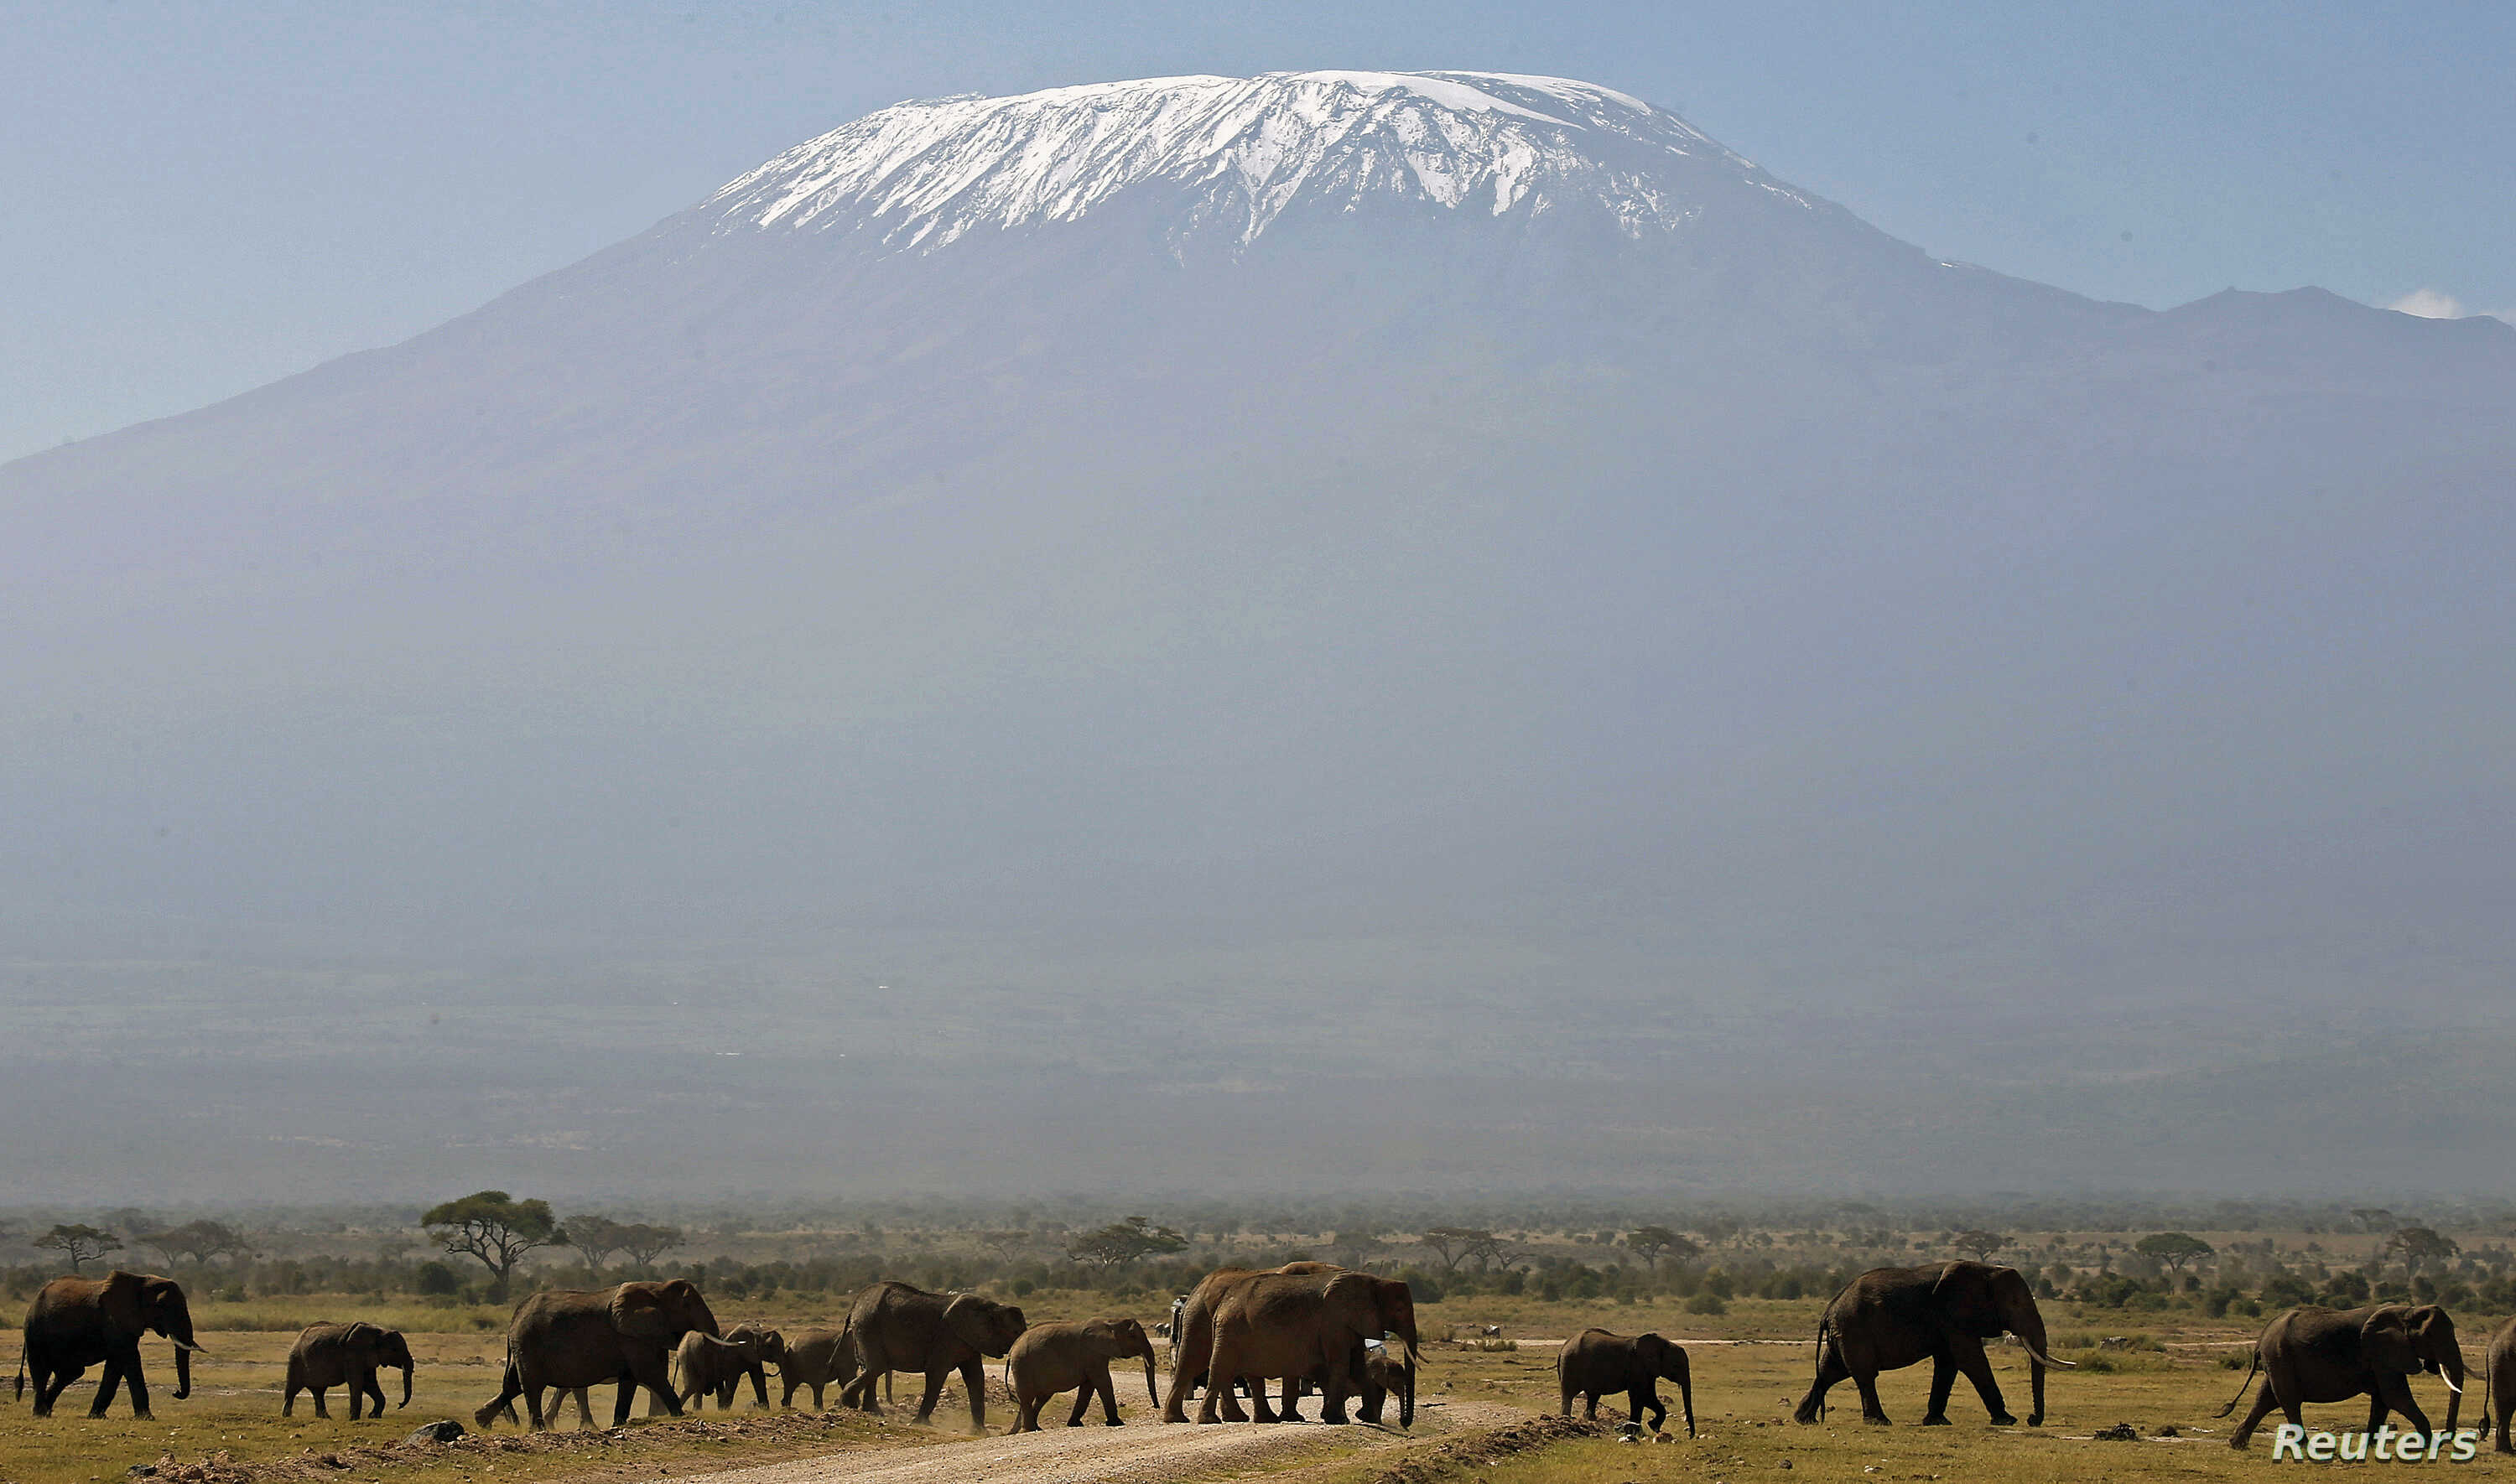 FILE - With Mount Kilimanjaro in the distance, elephants walk in Amboseli National Park, Tanzania, Jan. 2015.